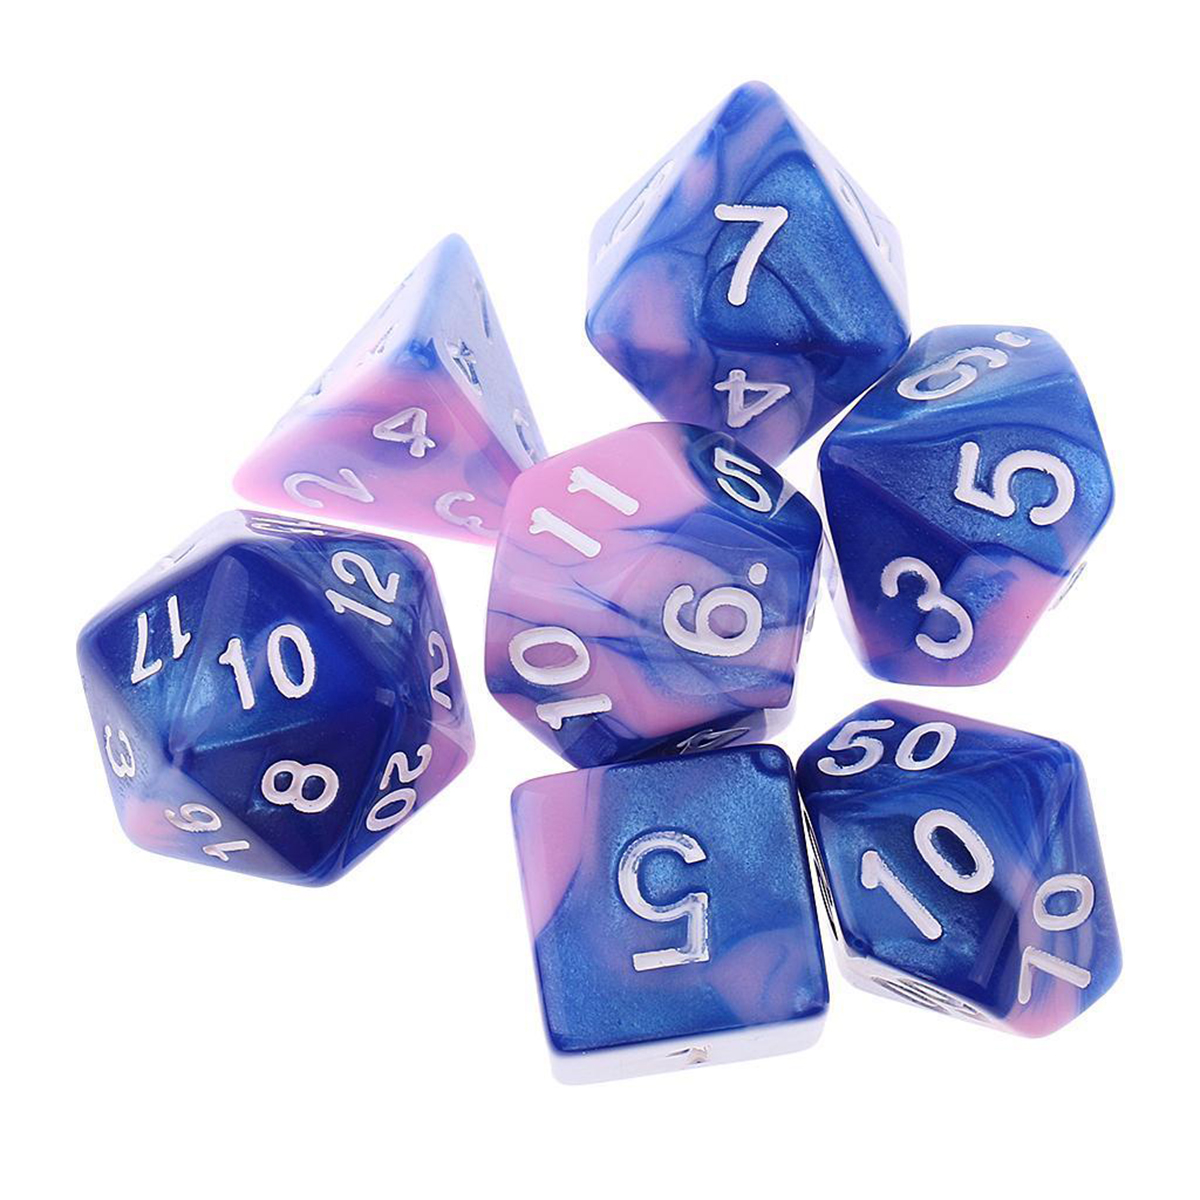 7Pcs Pink Blue Gemini Acrylic Polyhedral Dice For Dungeons Dragons RPG RPG With Bag